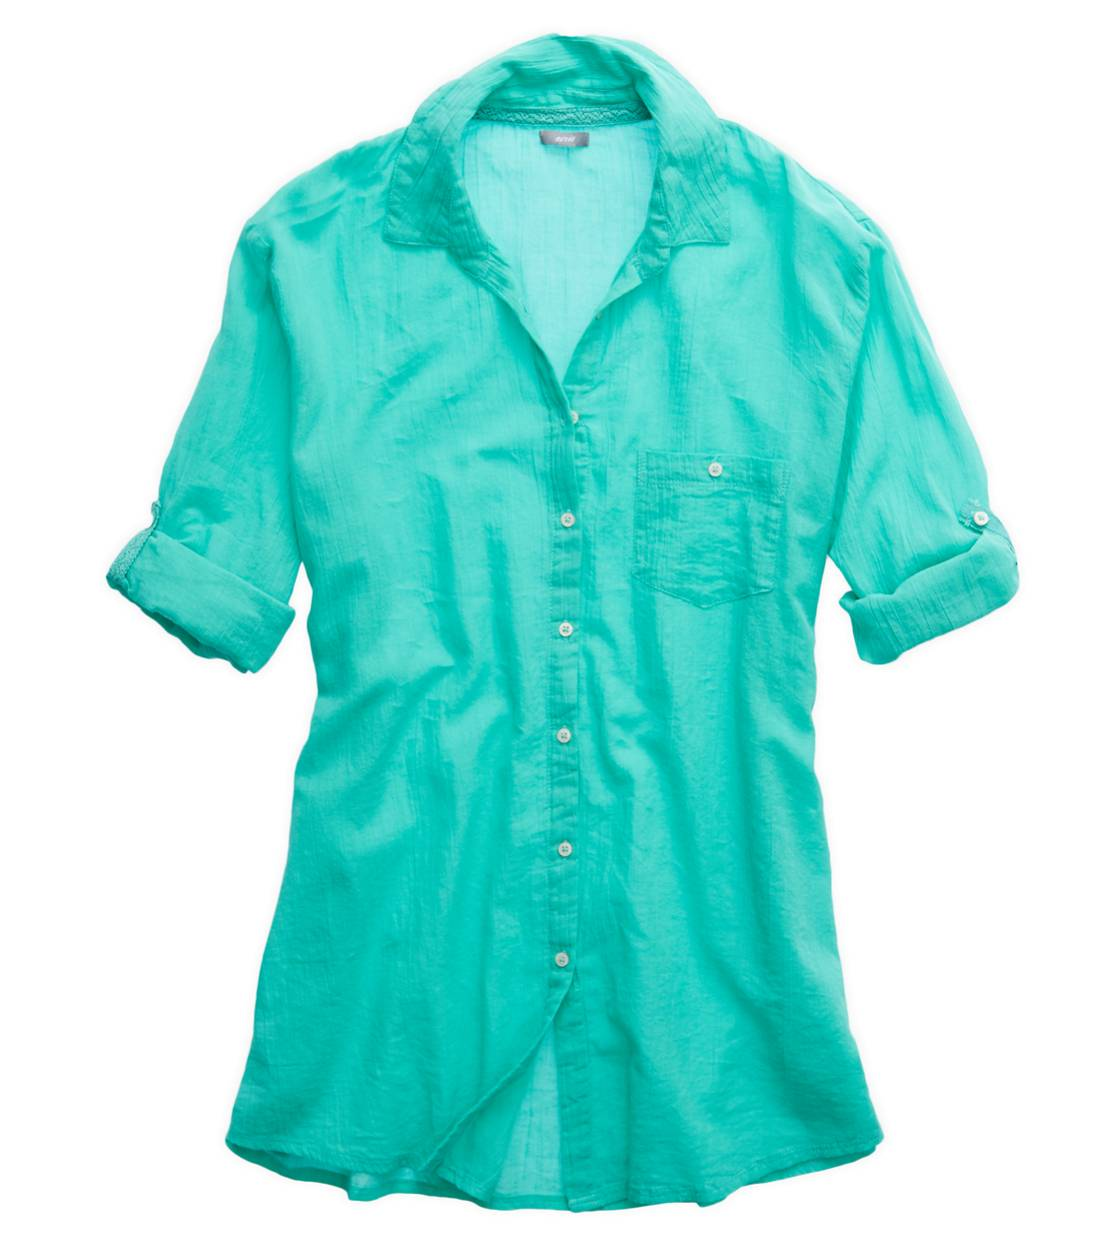 Mint Leaf Aerie Button Down Shirt